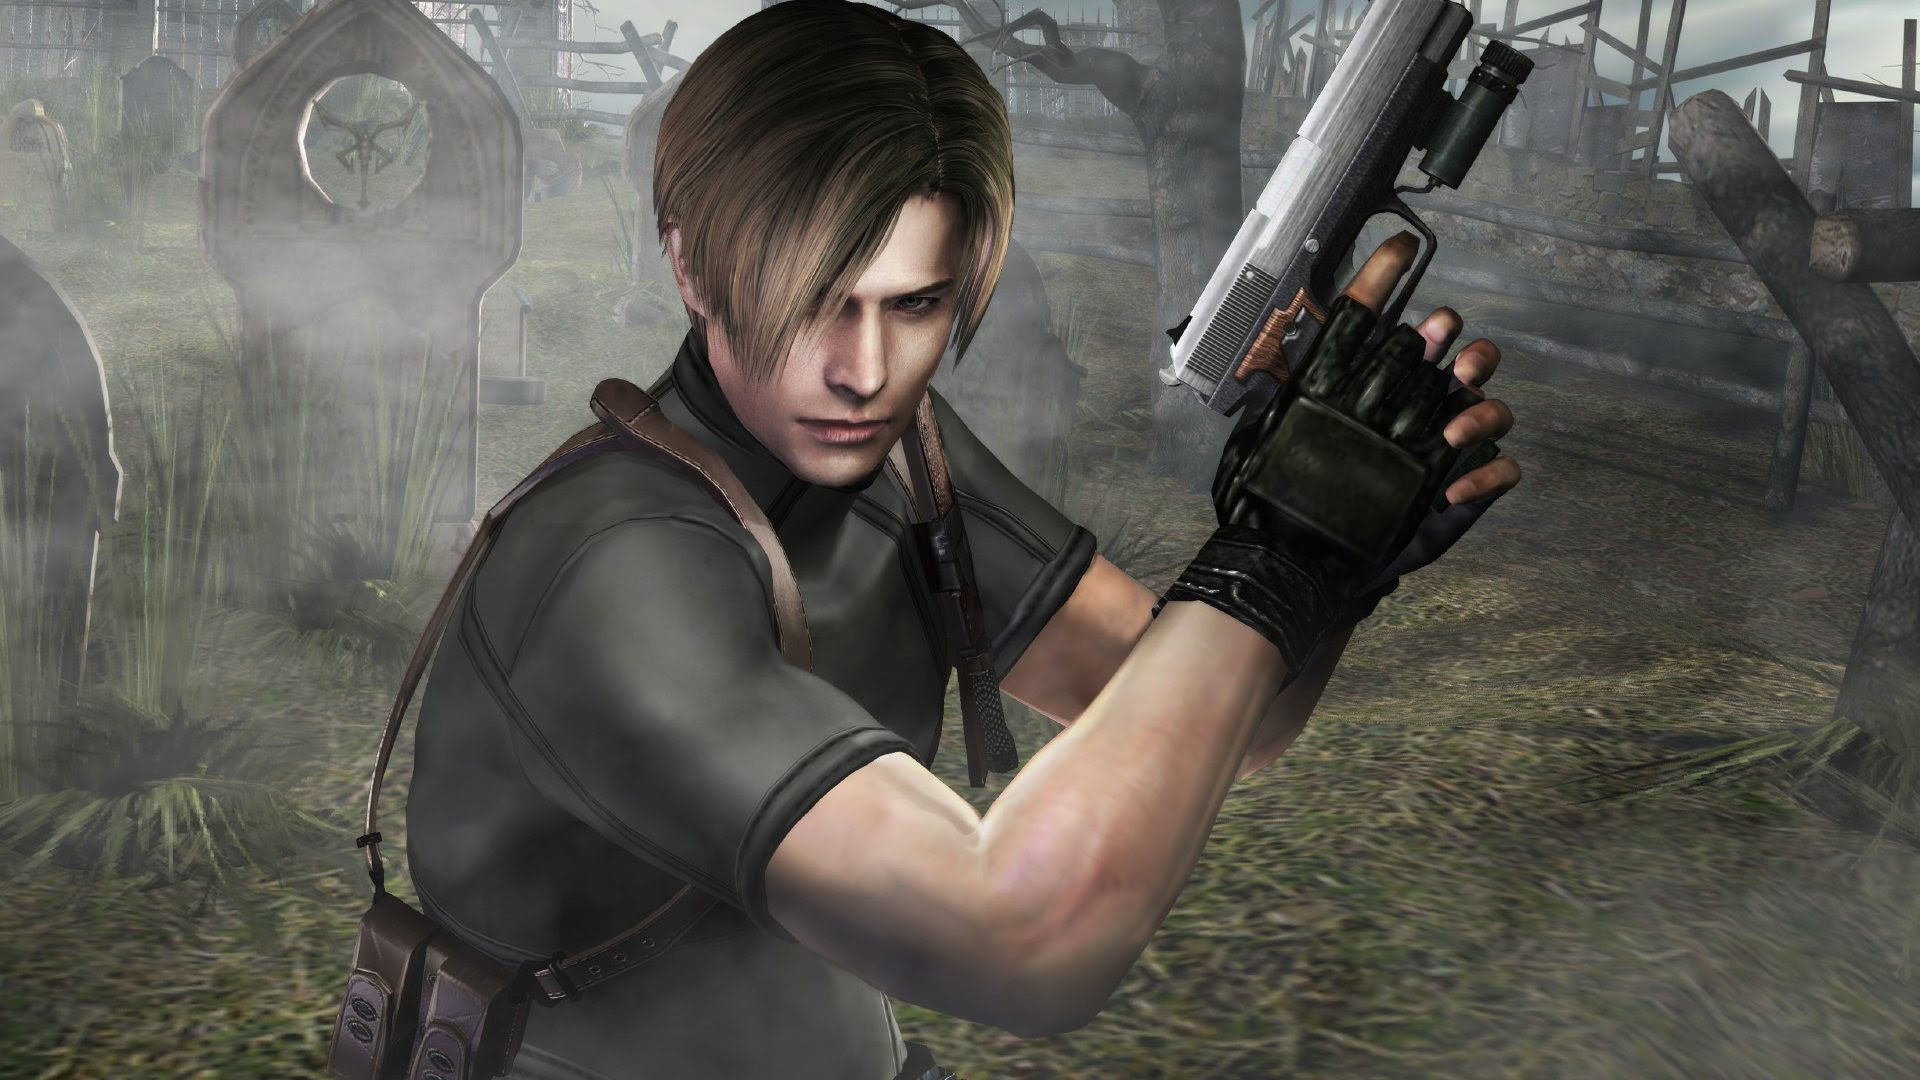 Resident Evil 4 Wallpaper Re4 Widesreen Minitokyo